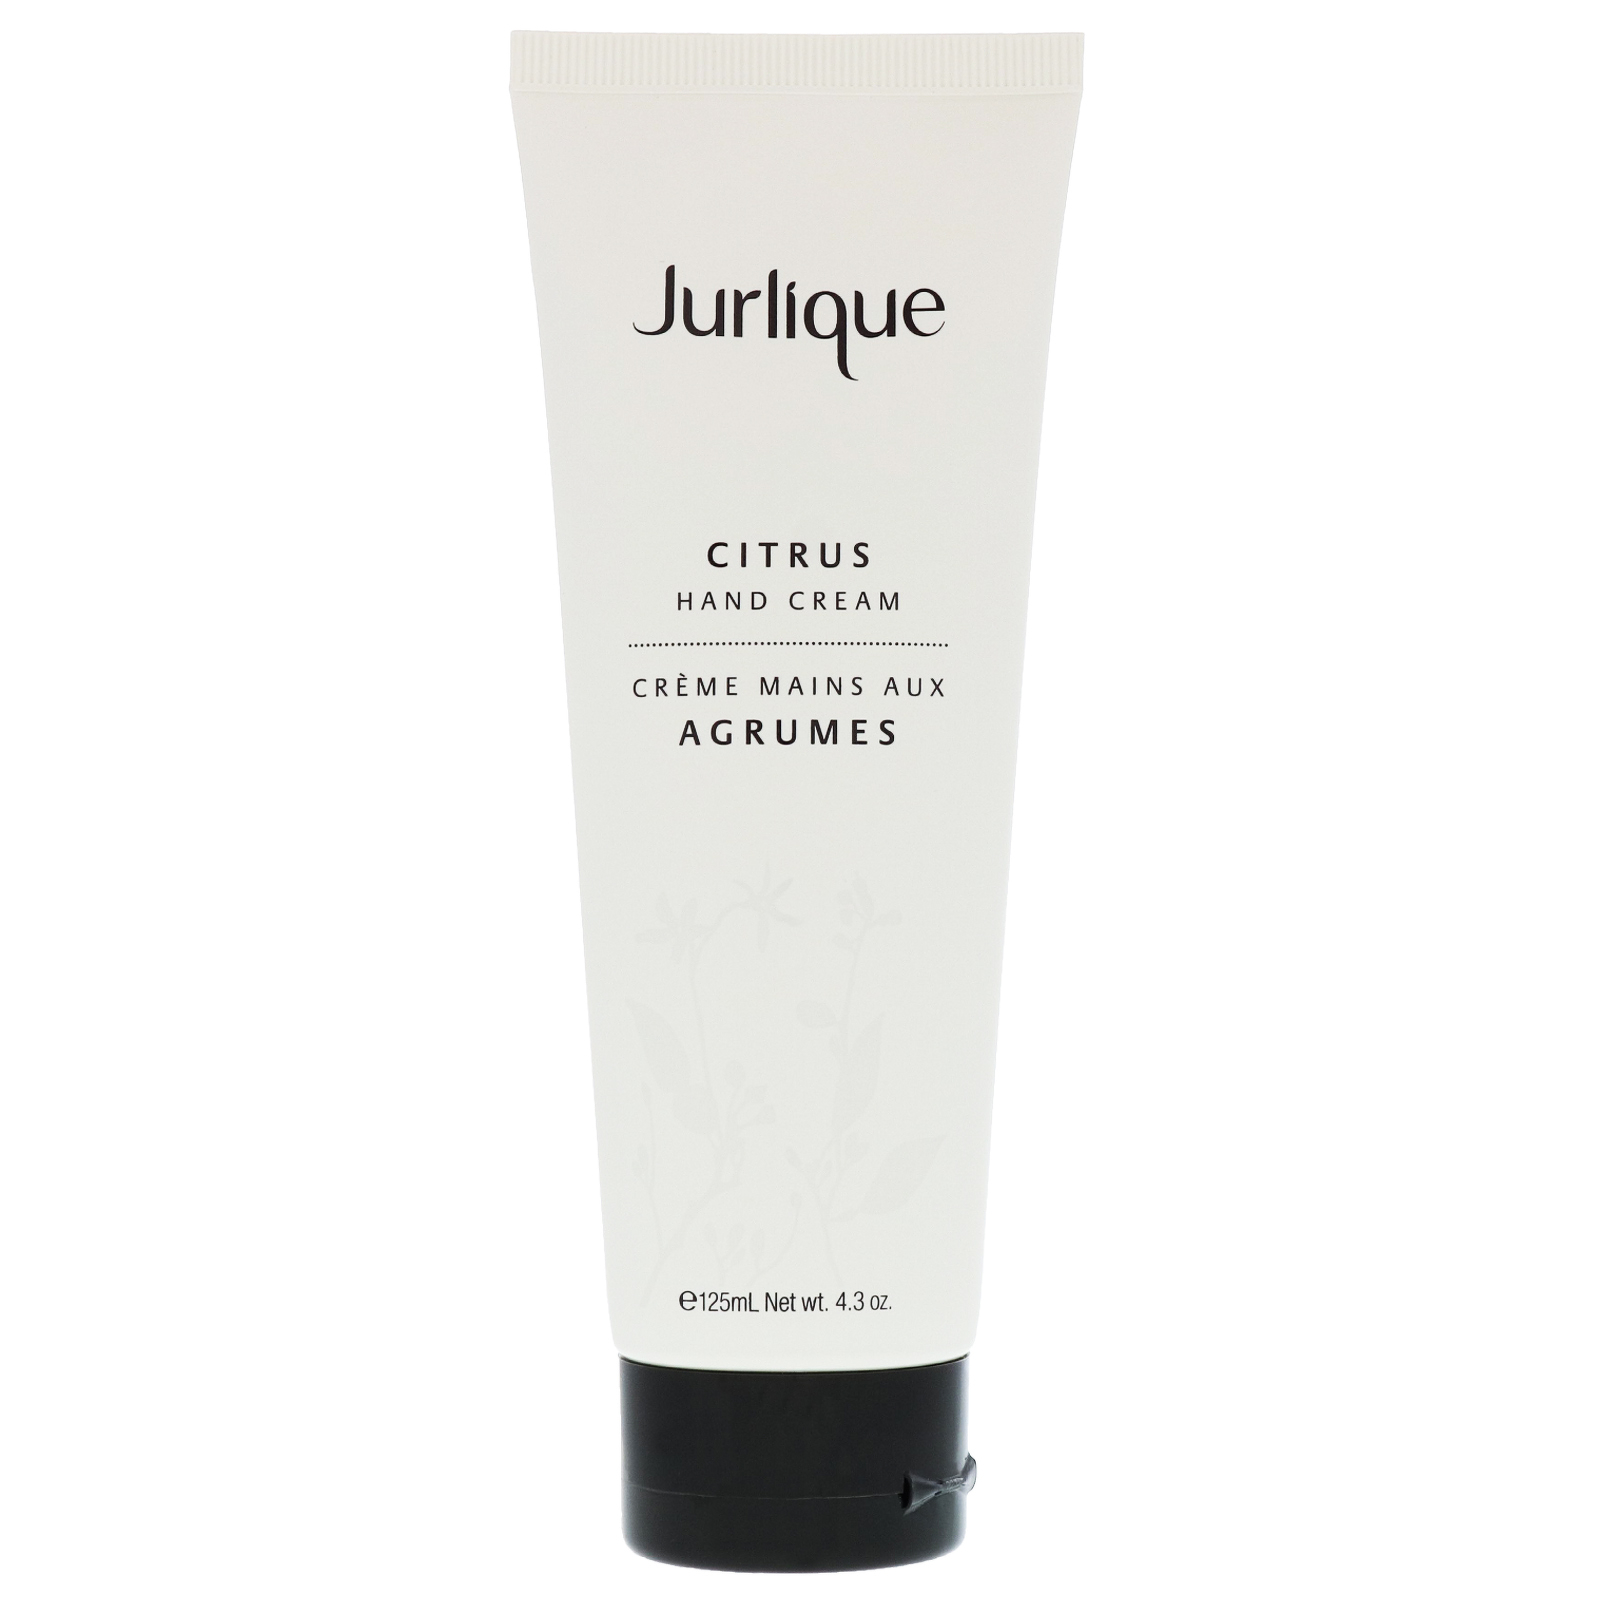 Jurlique Hands Citrus Hand Cream 125ml